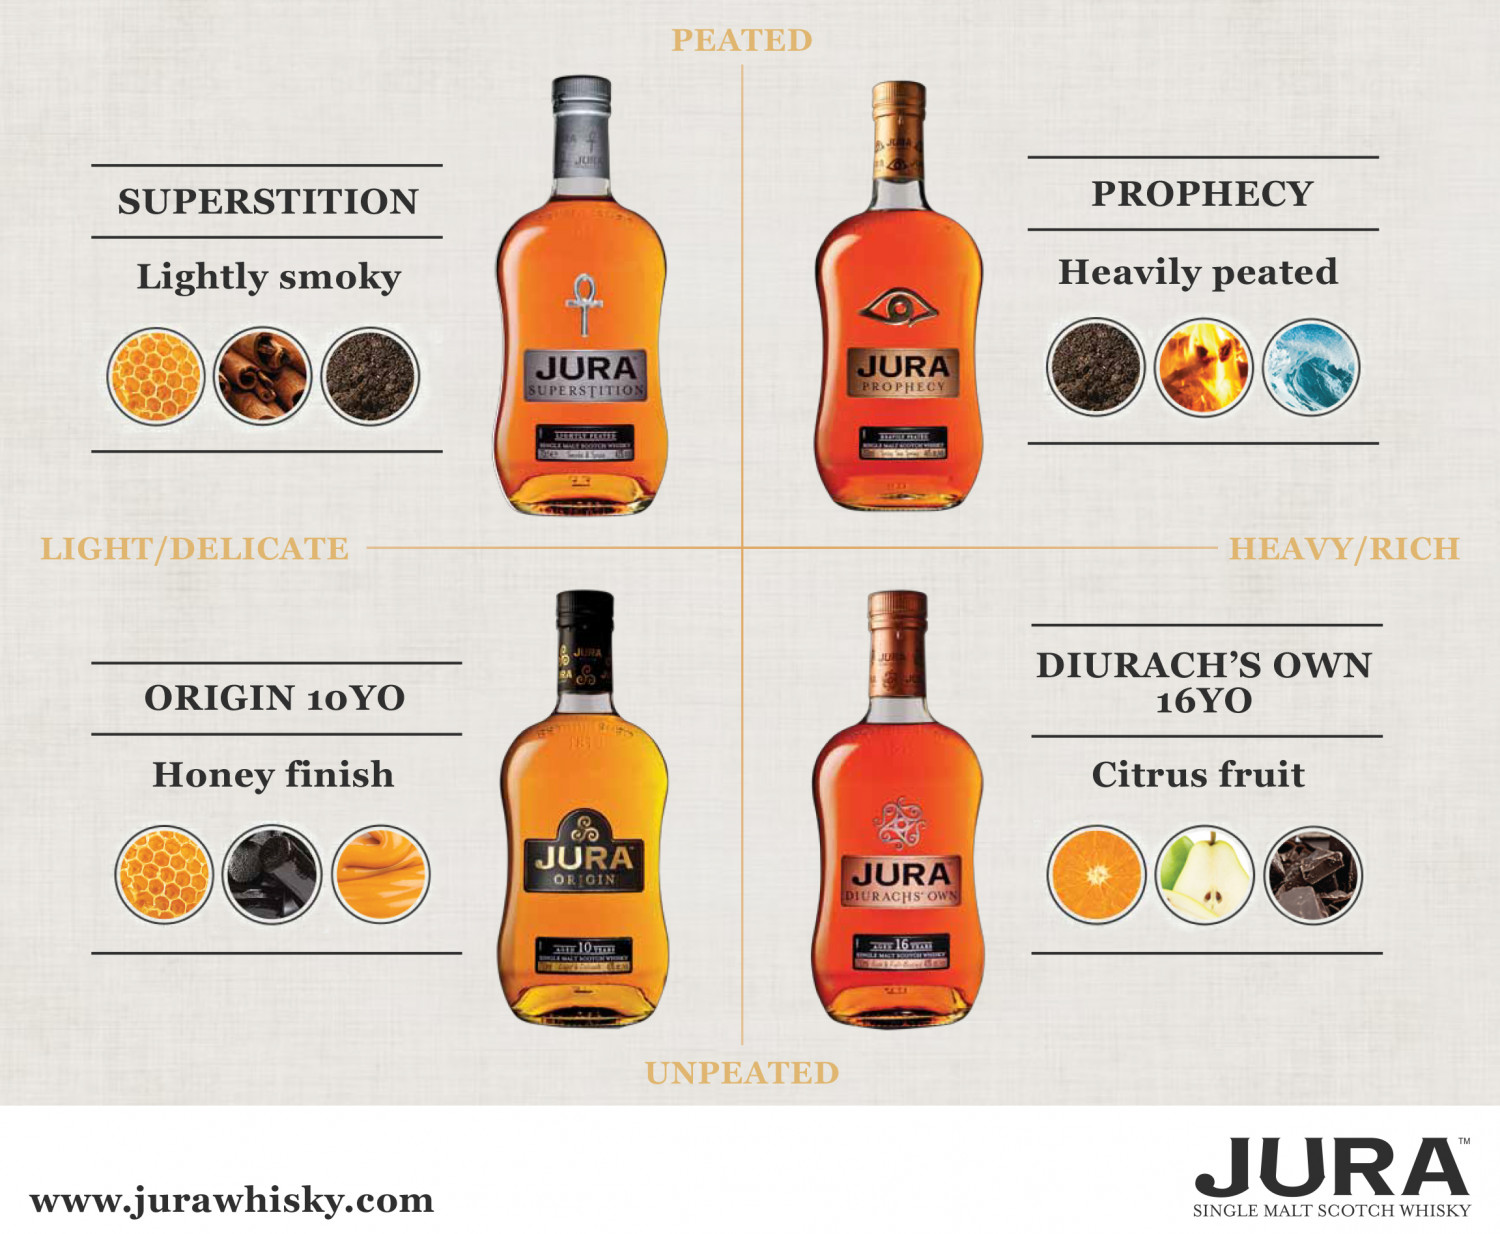 The Core Styles of Jura Infographic